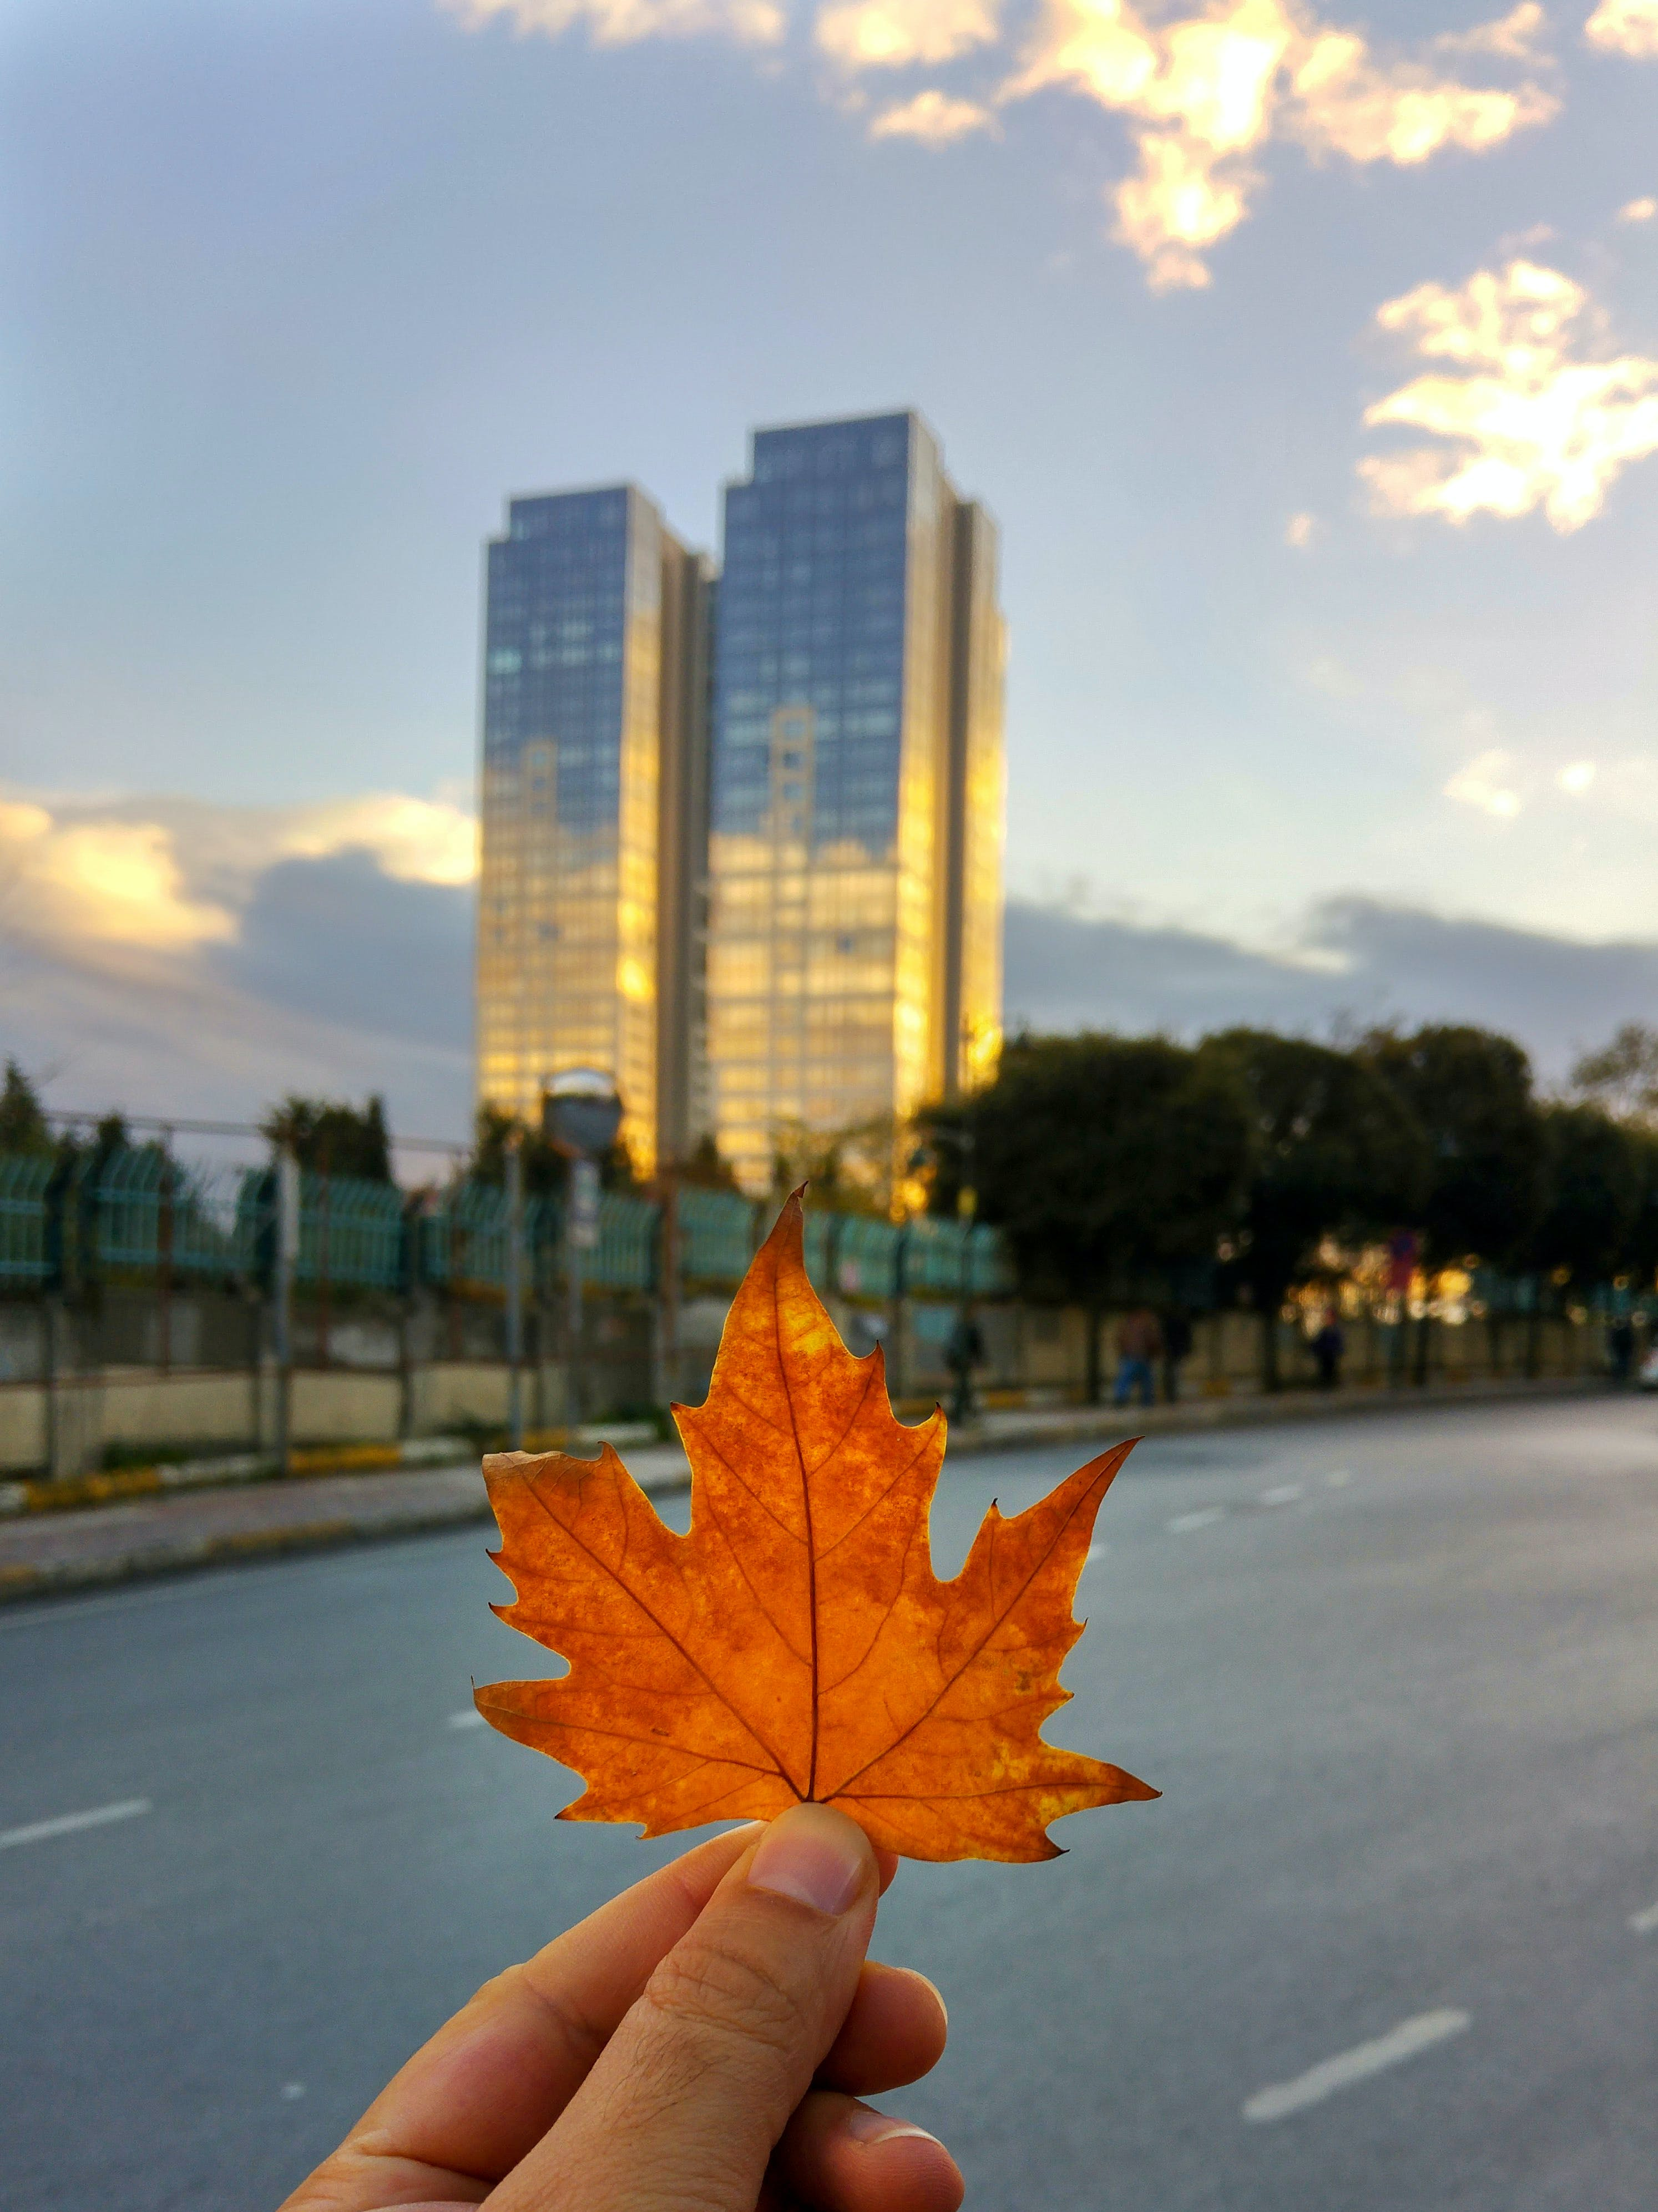 Free stock photo of autumn, city, dry leaf, fall